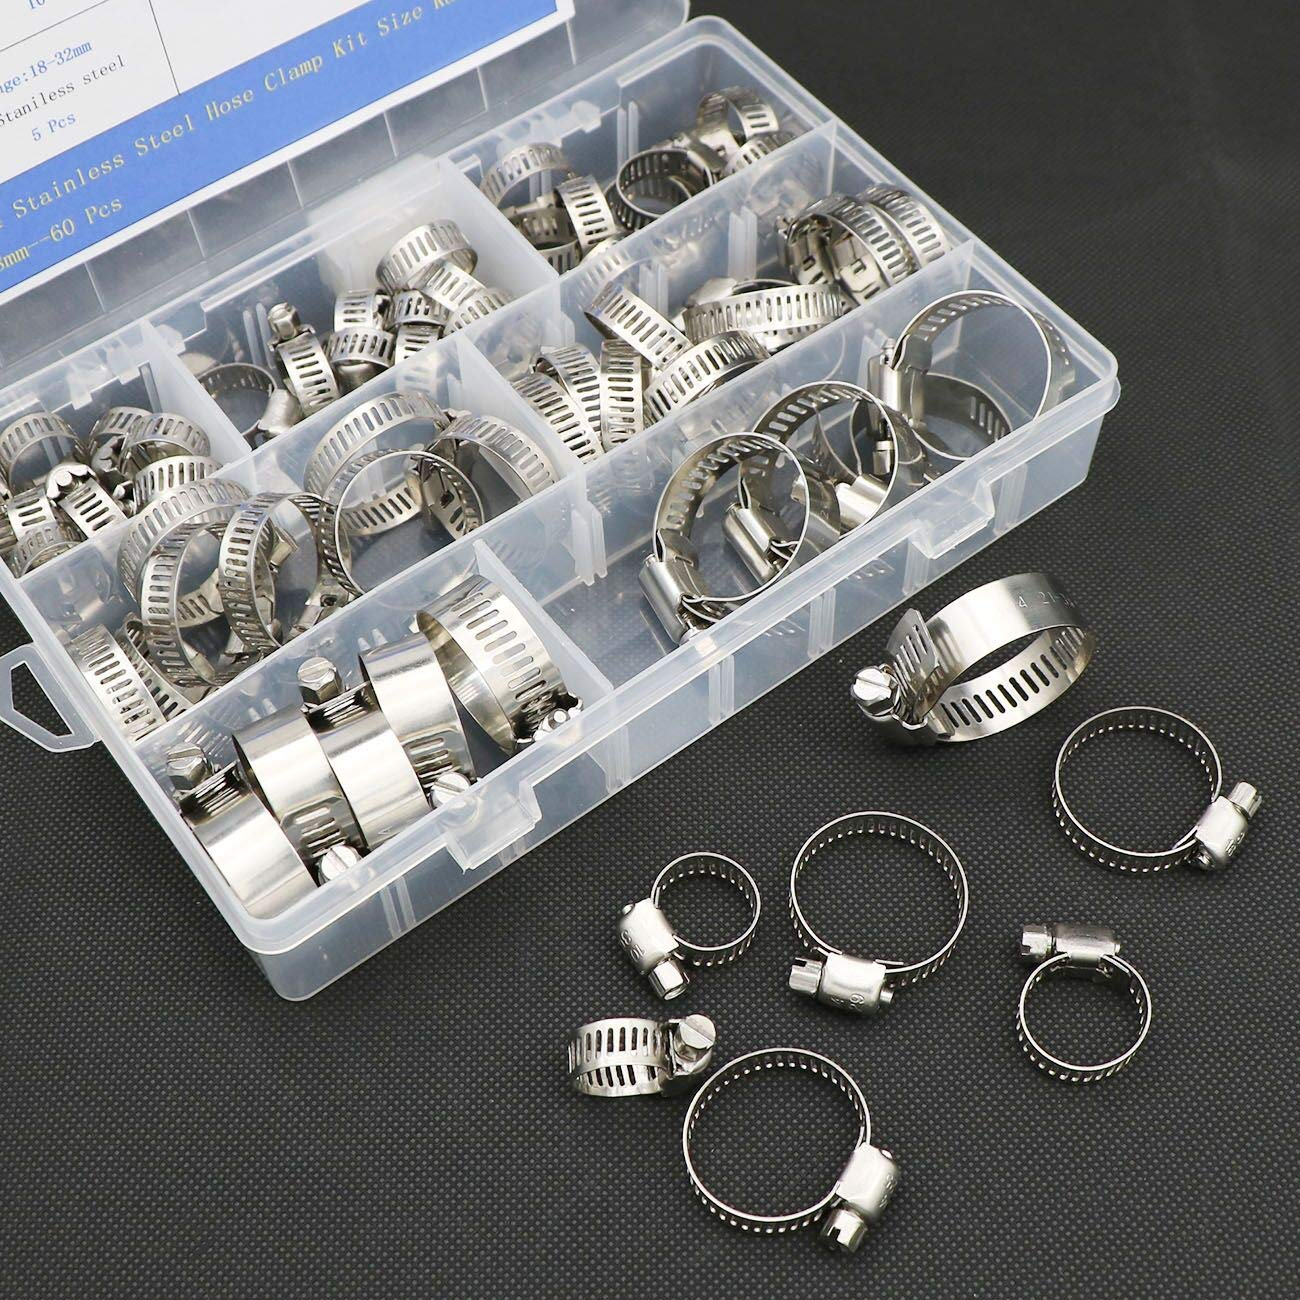 Fuel Line Clamps for Plumbing//Automotive//Mechanical Applications XINMKA 60 Pcs 304 Stainless Steel Adjustable 6-38mm Range Worm Gear Hose Clamp Hose Clamps